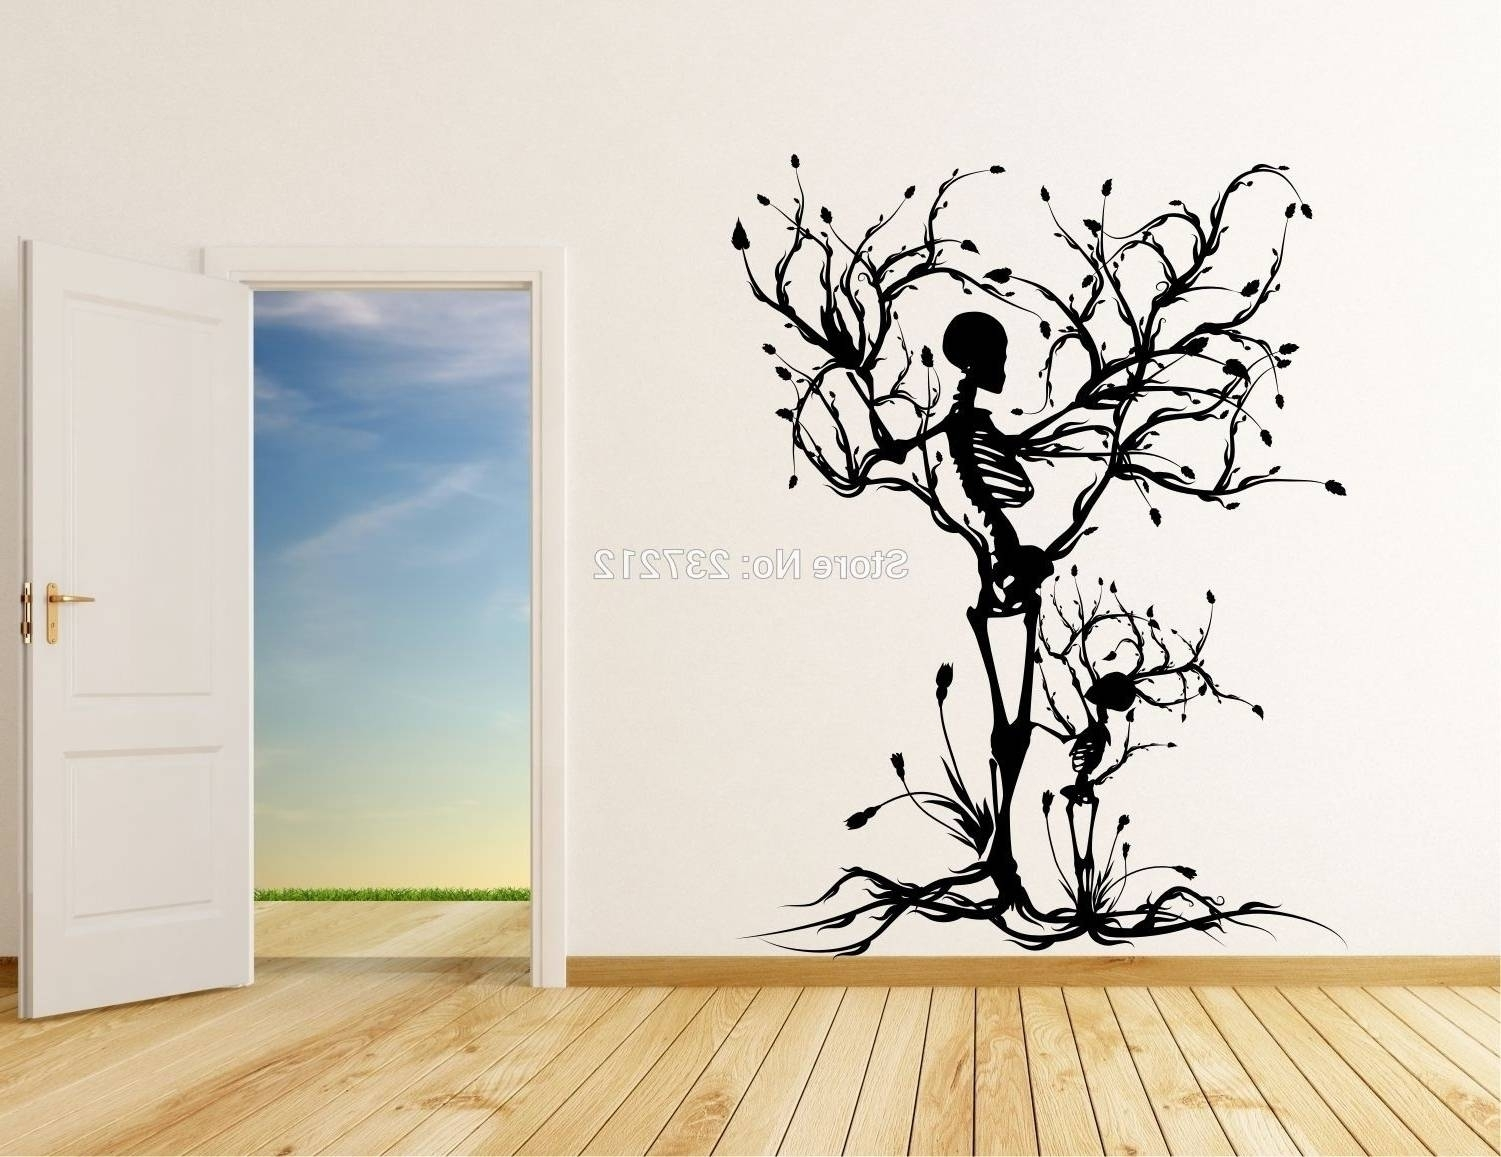 21 Collection Of Kohls Wall Art Decals Intended For Most Popular Kohls 5 Piece Canvas Wall Art (View 2 of 15)